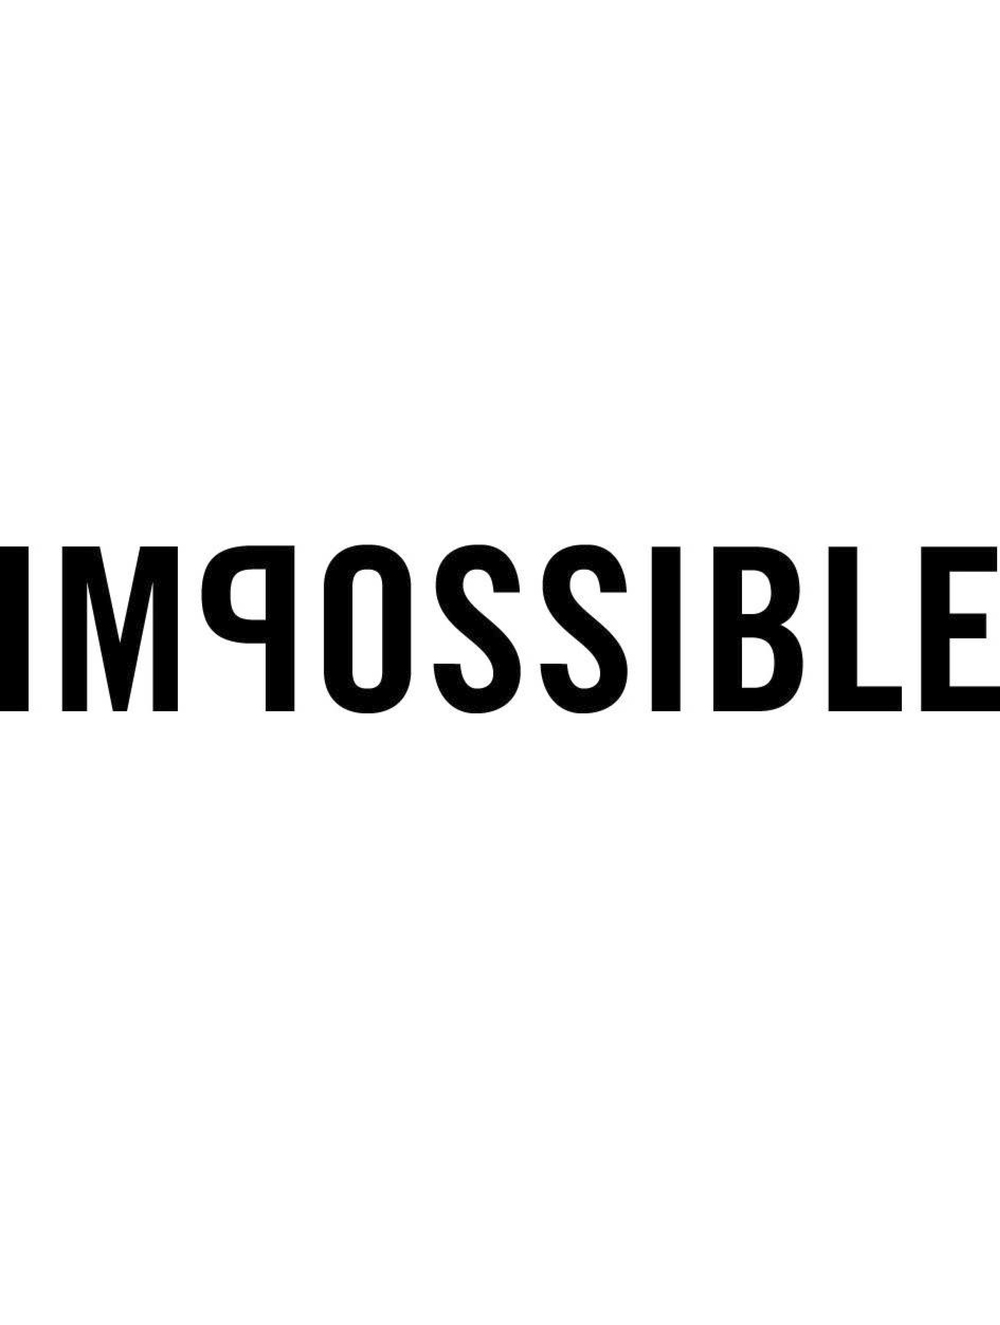 IMPOSSIBLE-PressKit-1.jpg